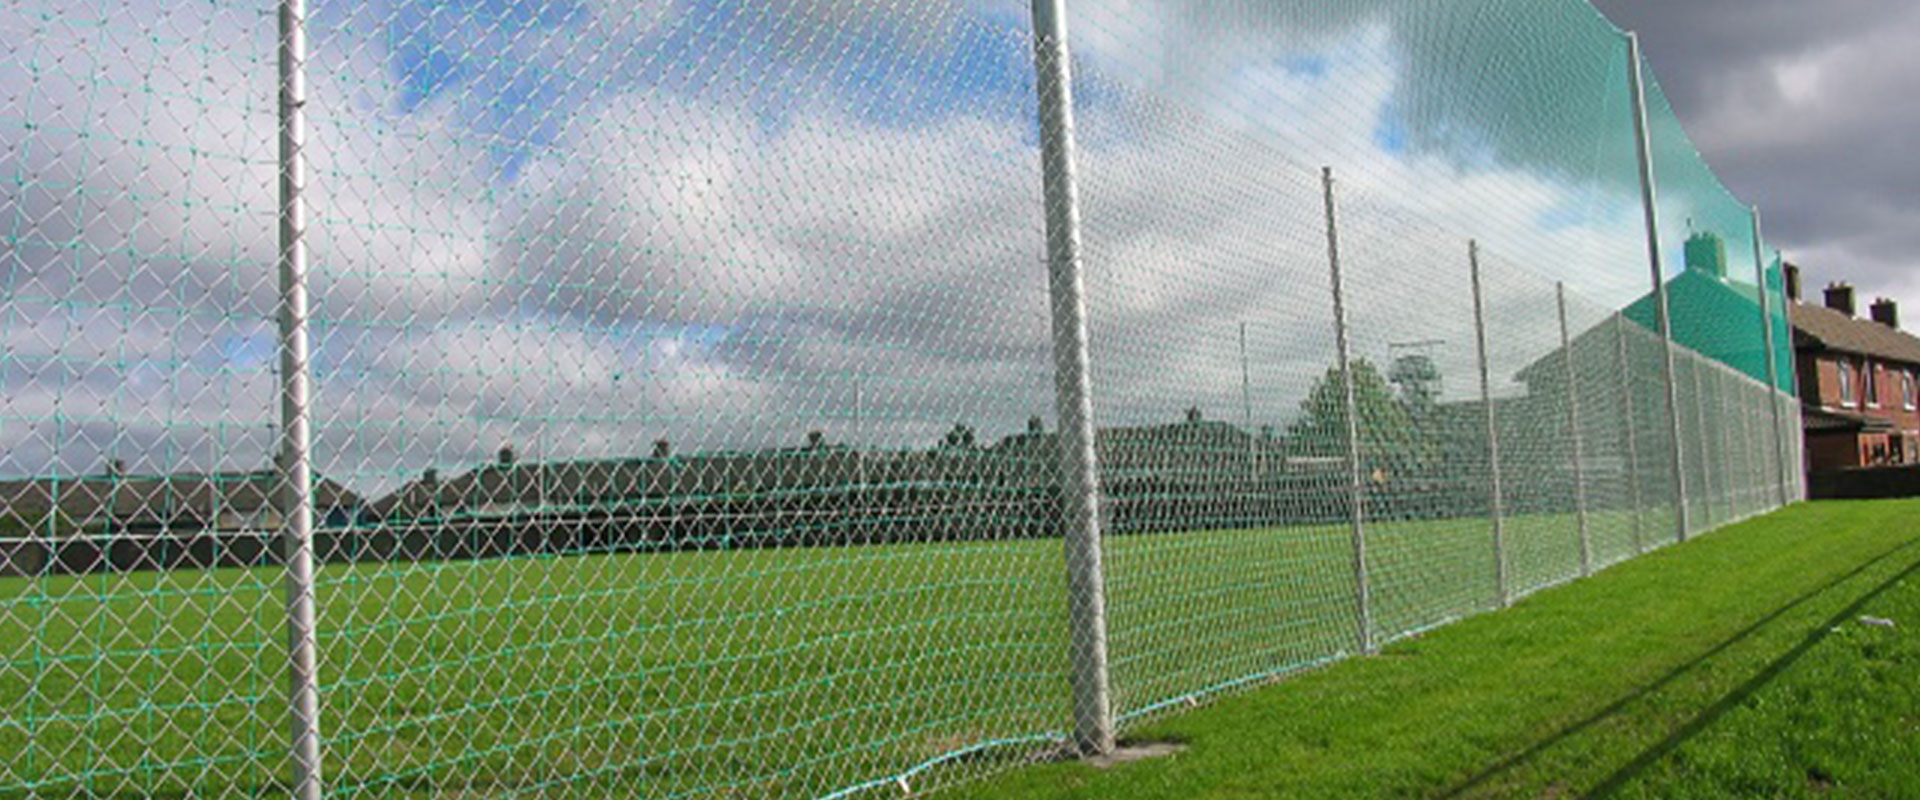 Sports Fence